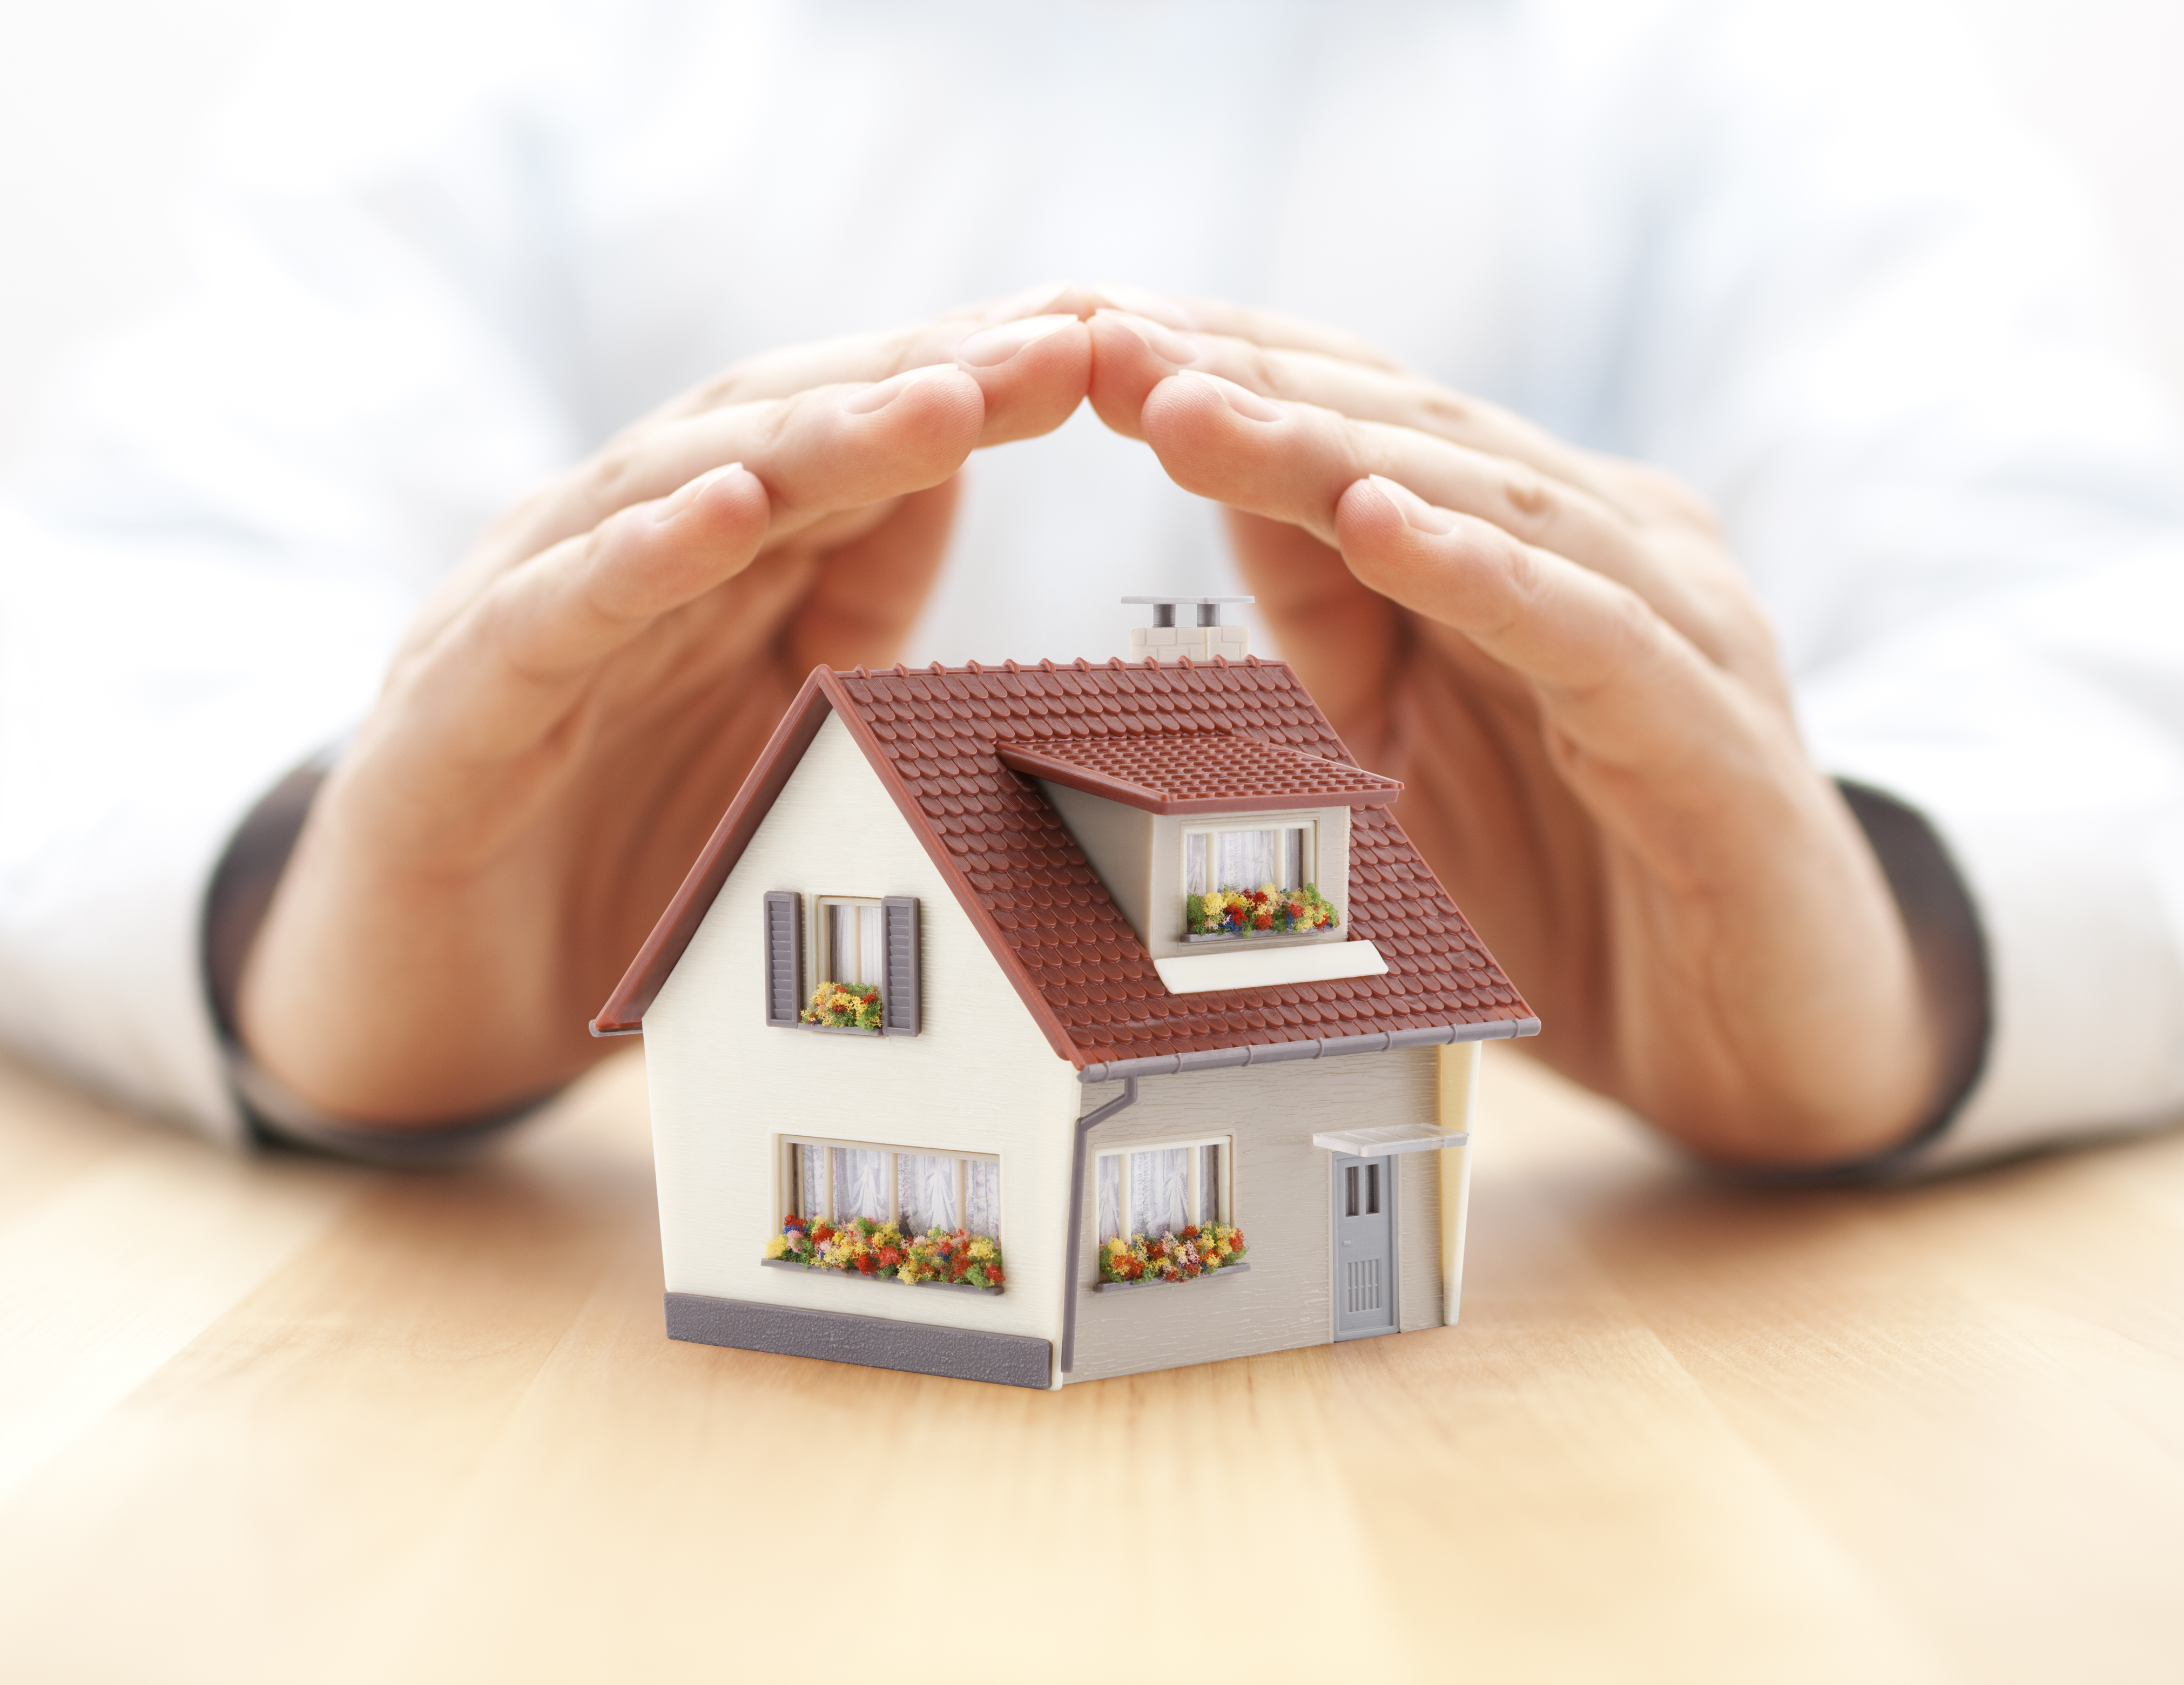 Small toy house covered by hands